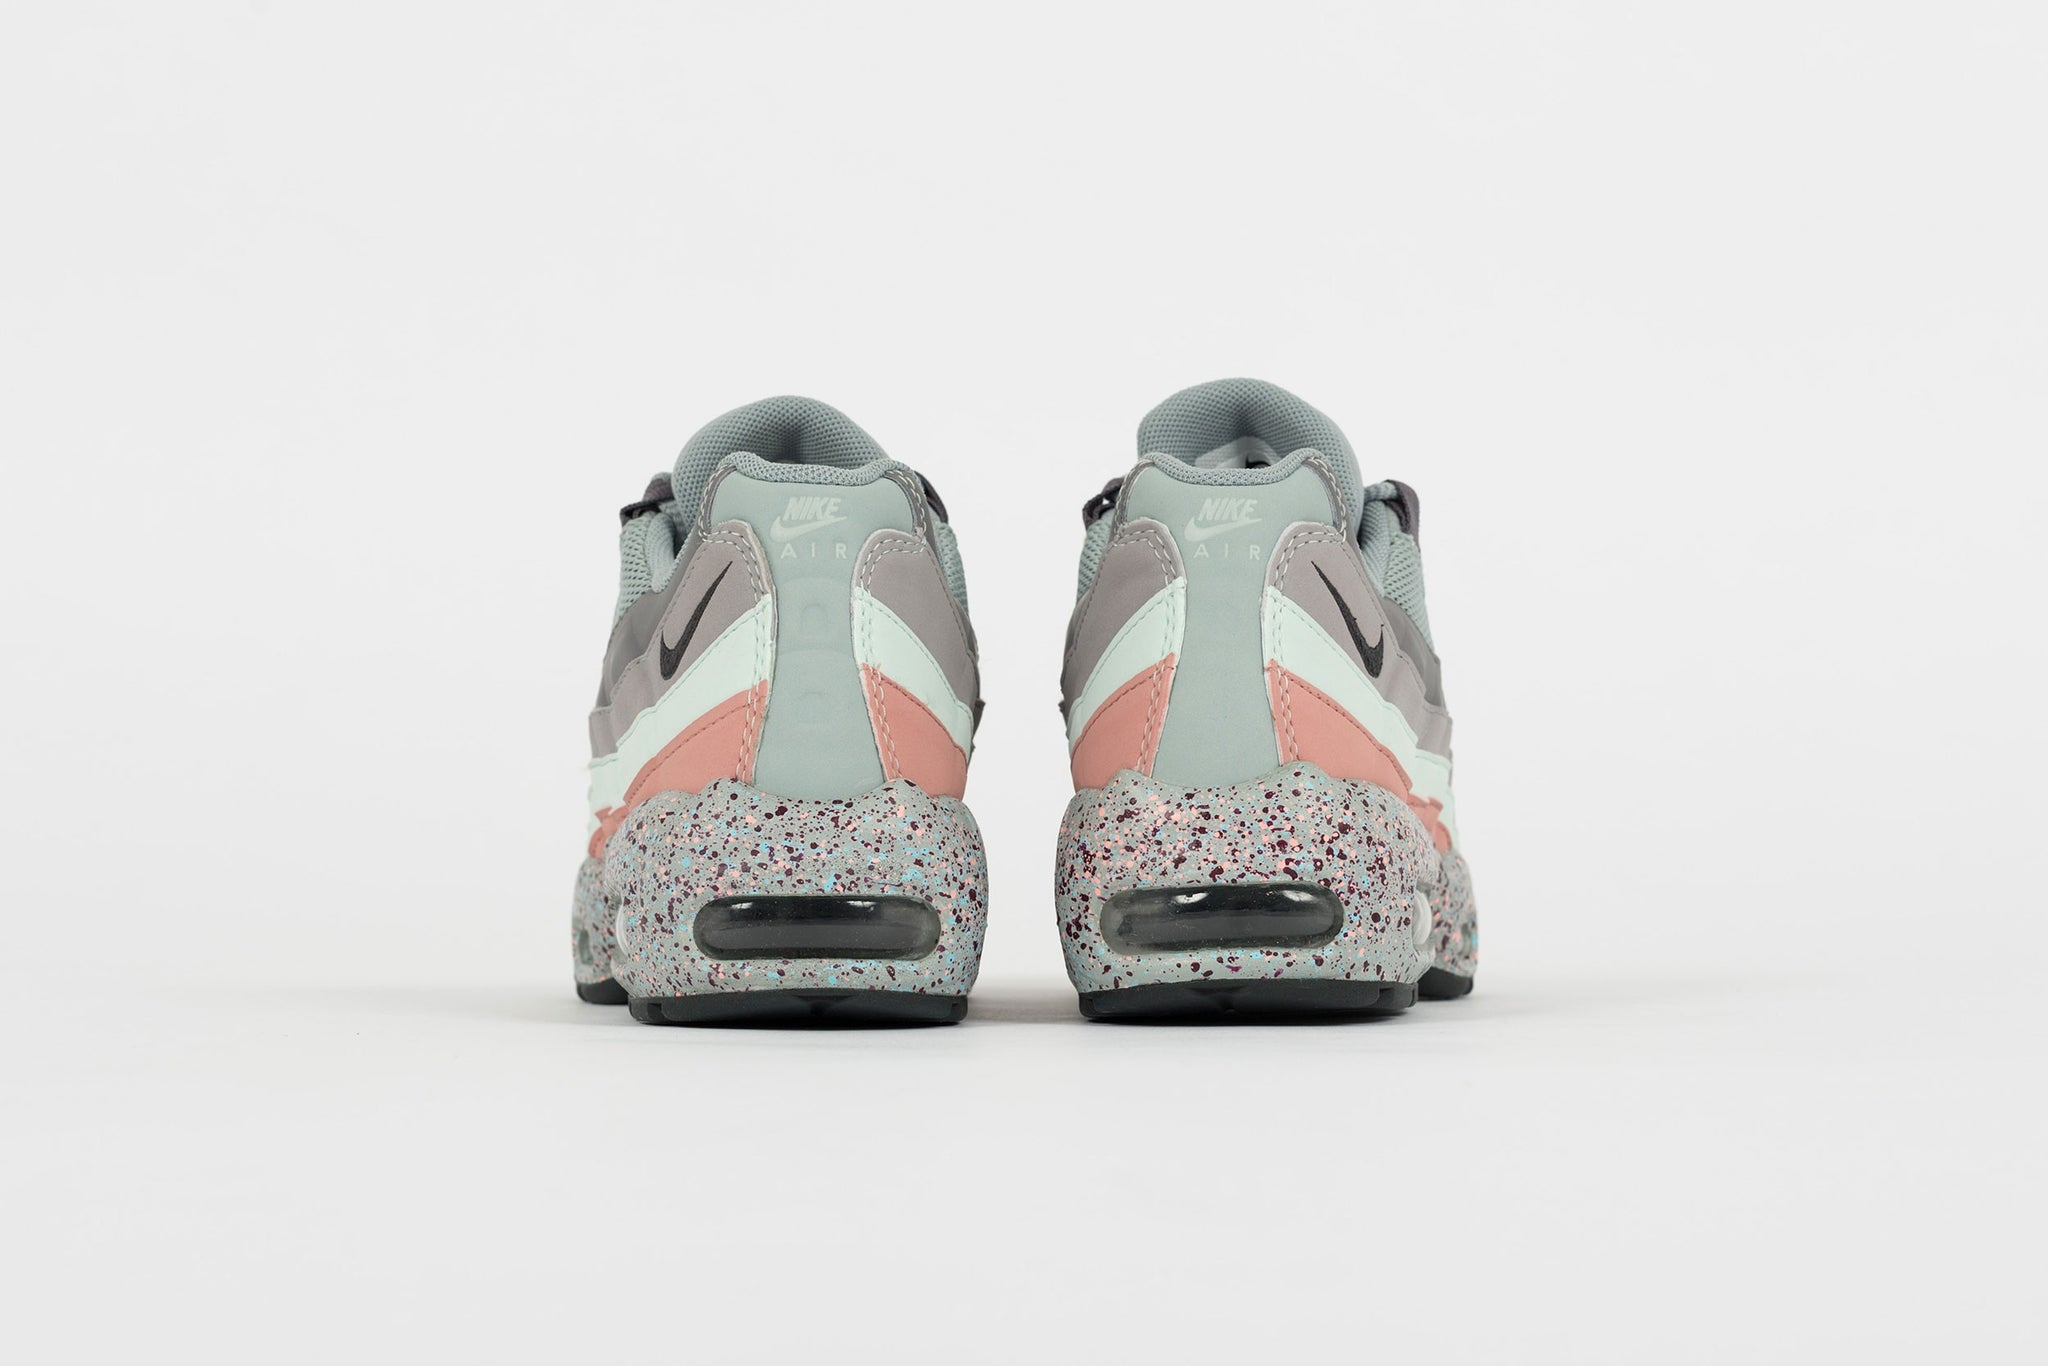 Nike WMNS Air Max 95 SE - Light Pumice/Anthracite/Gunsmoke #918413-002-Preorder Item-Navy Selected Shop